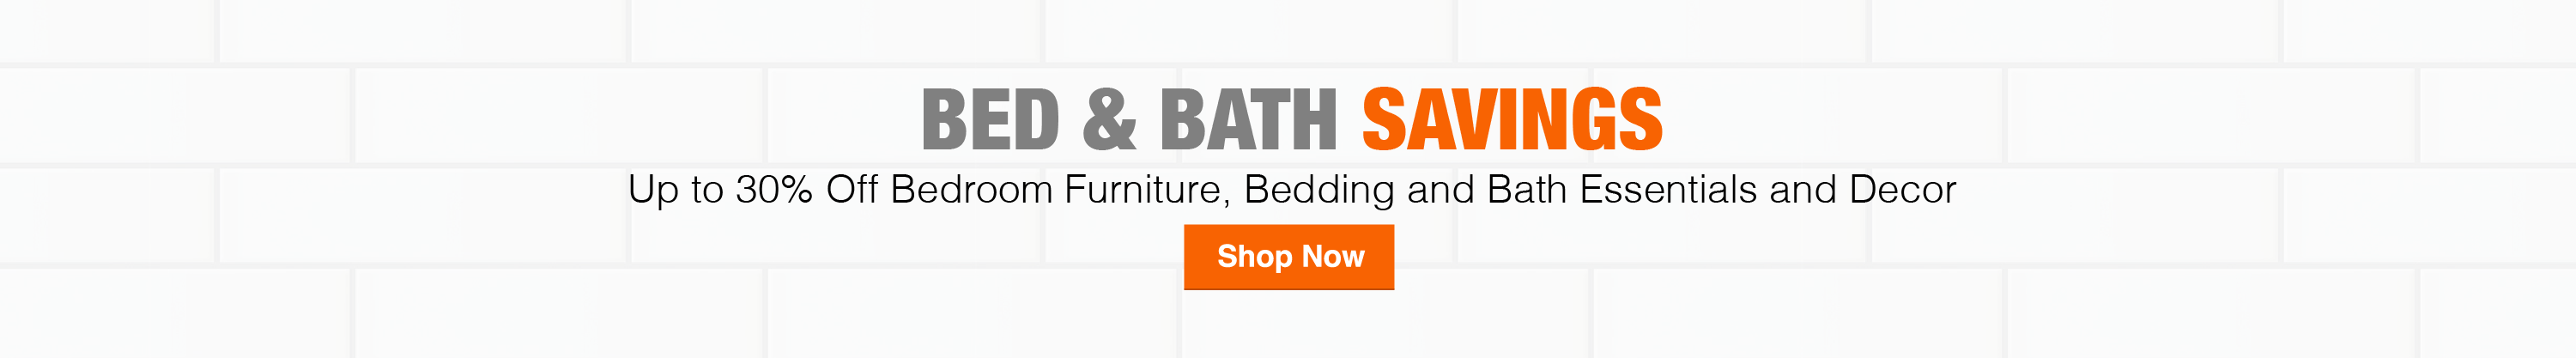 Bed & Bath Savings - Up To 30% Off Select Bedroom, Bedding & Bath Essentials and Decor